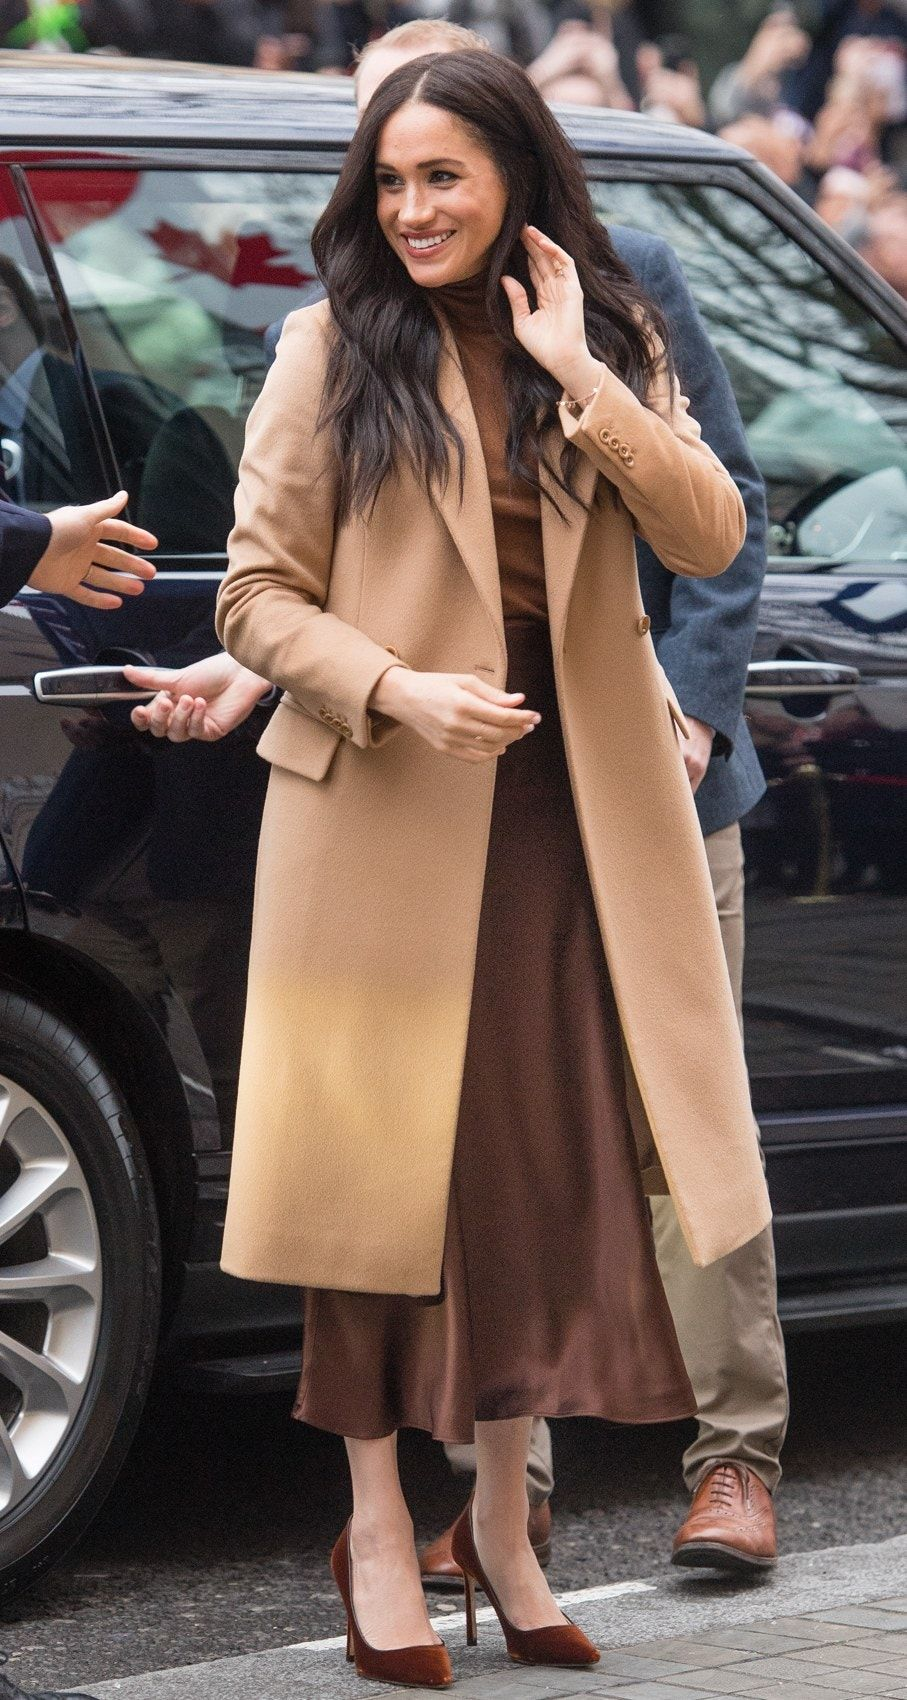 Meghan Markle Steps Out in Winter's Most Unexpected Shoe